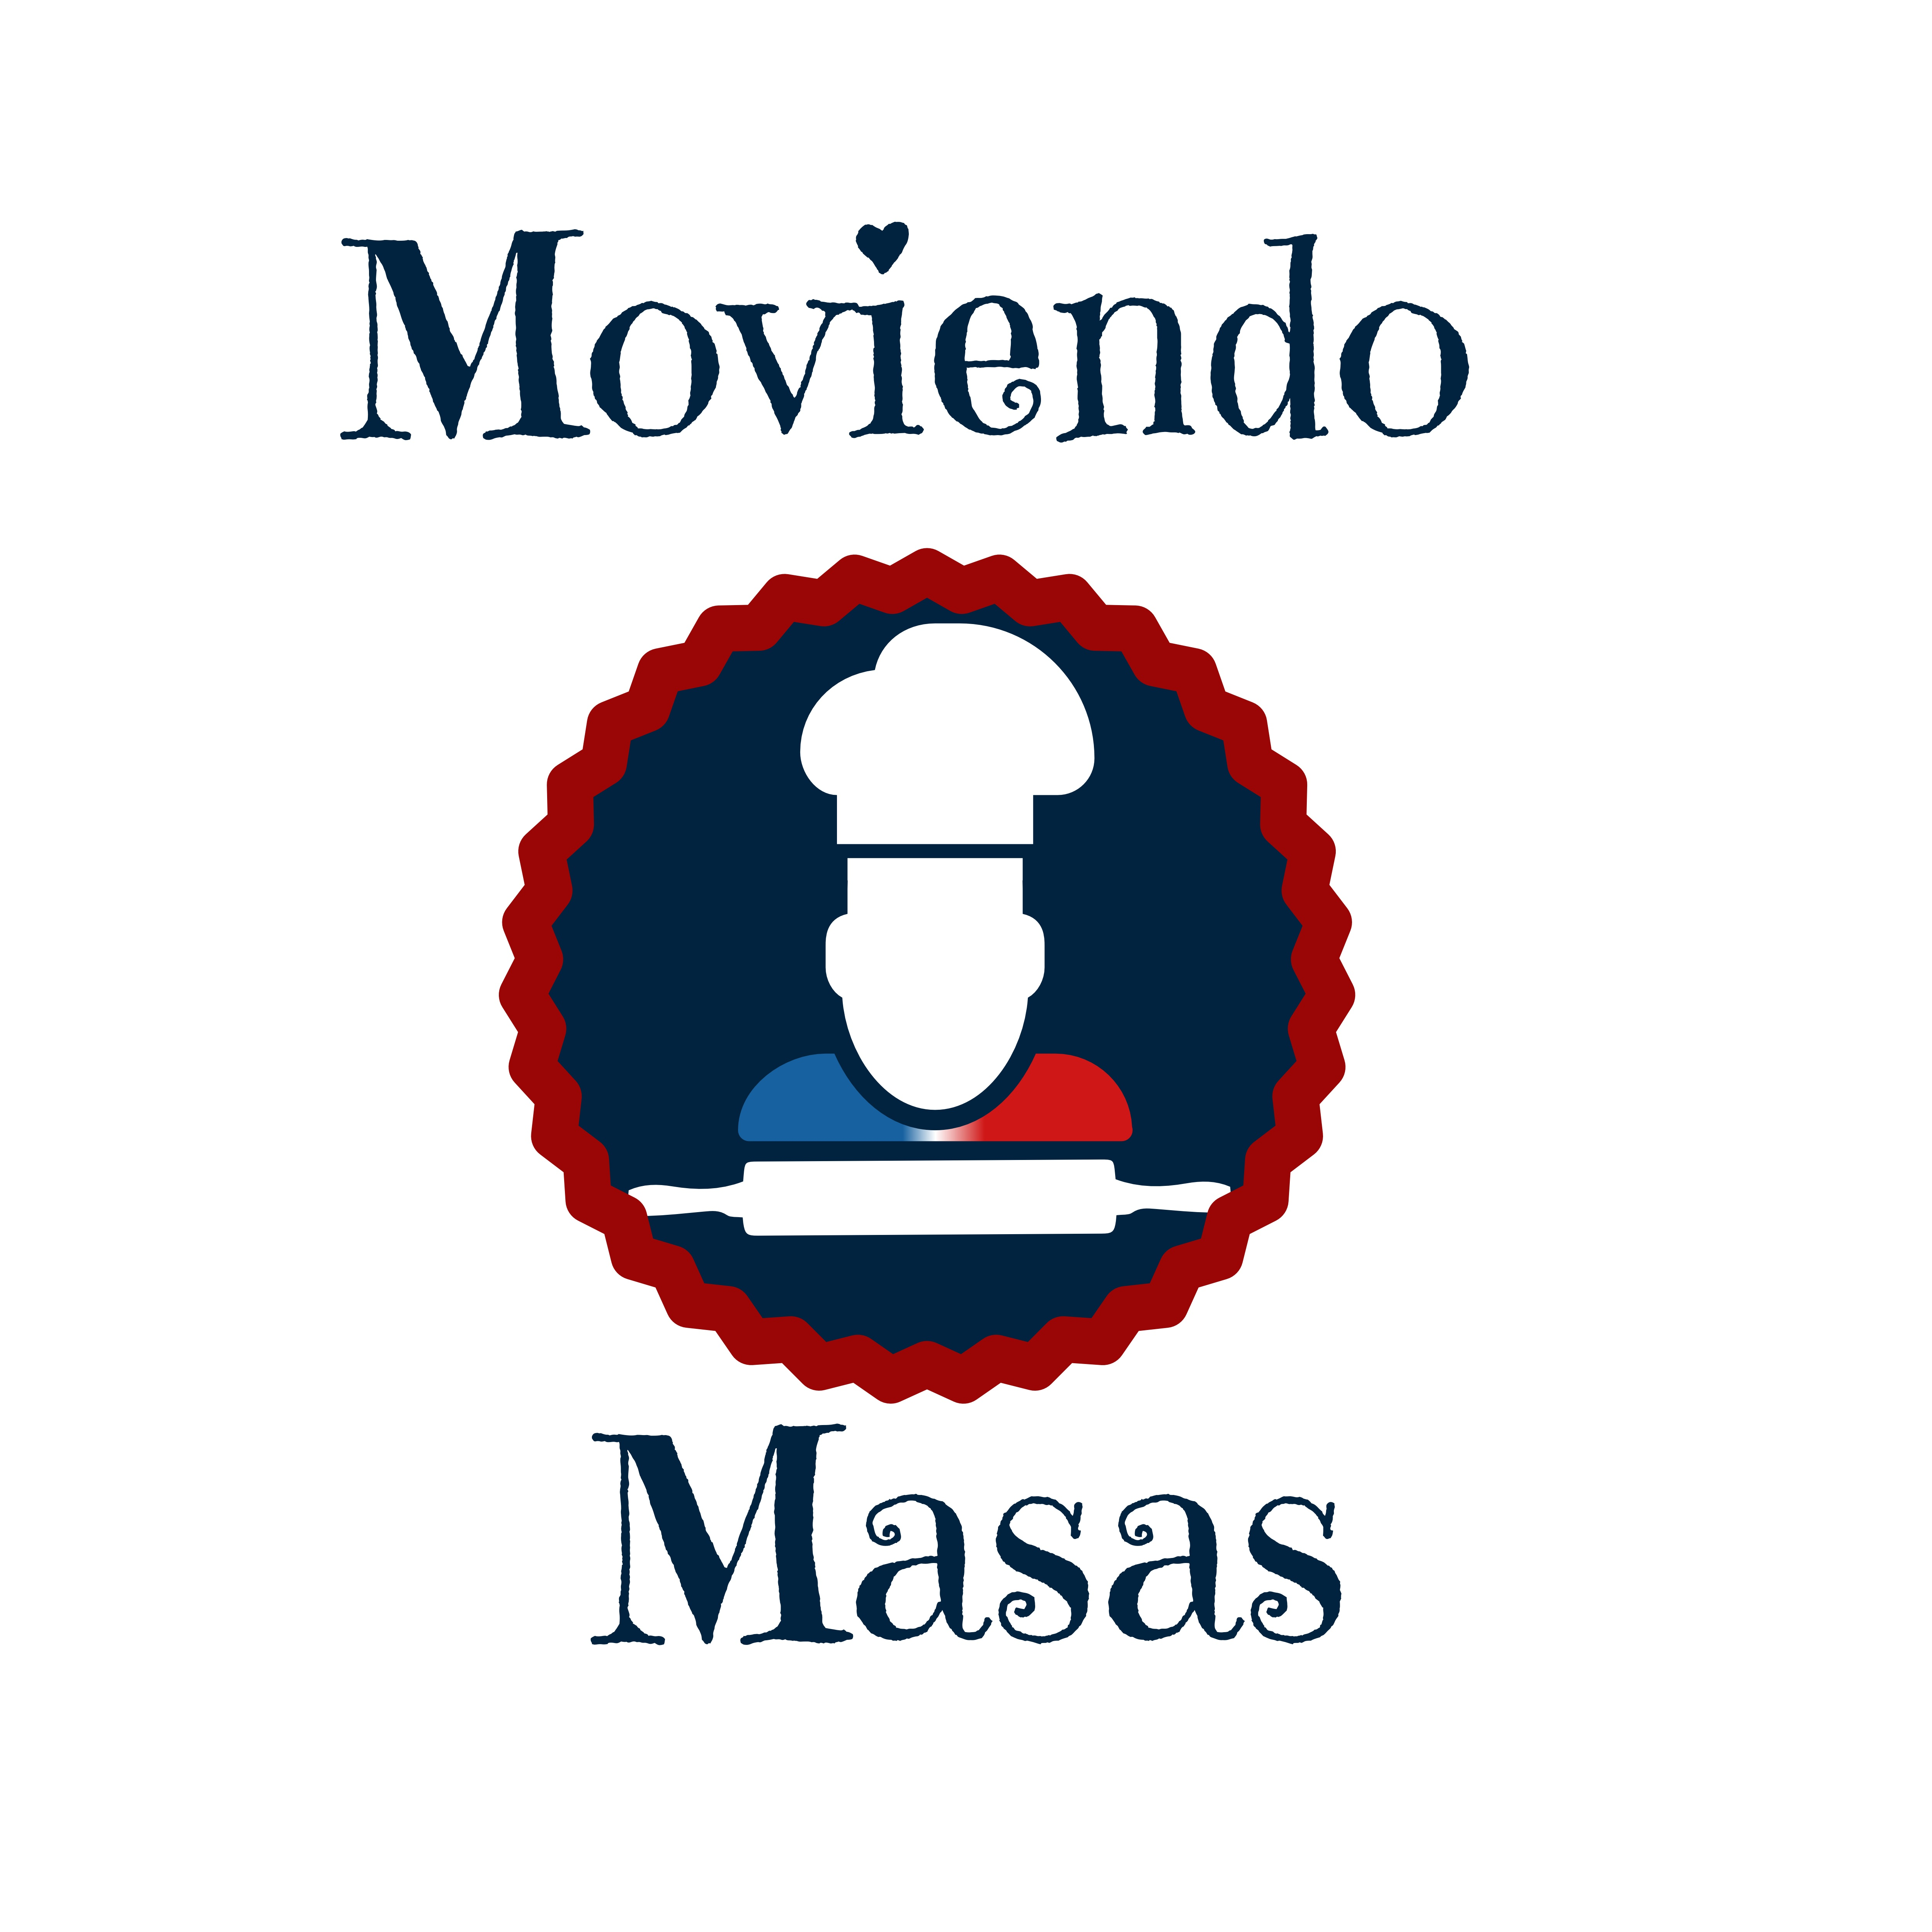 MOVIENDO MASAS SpA